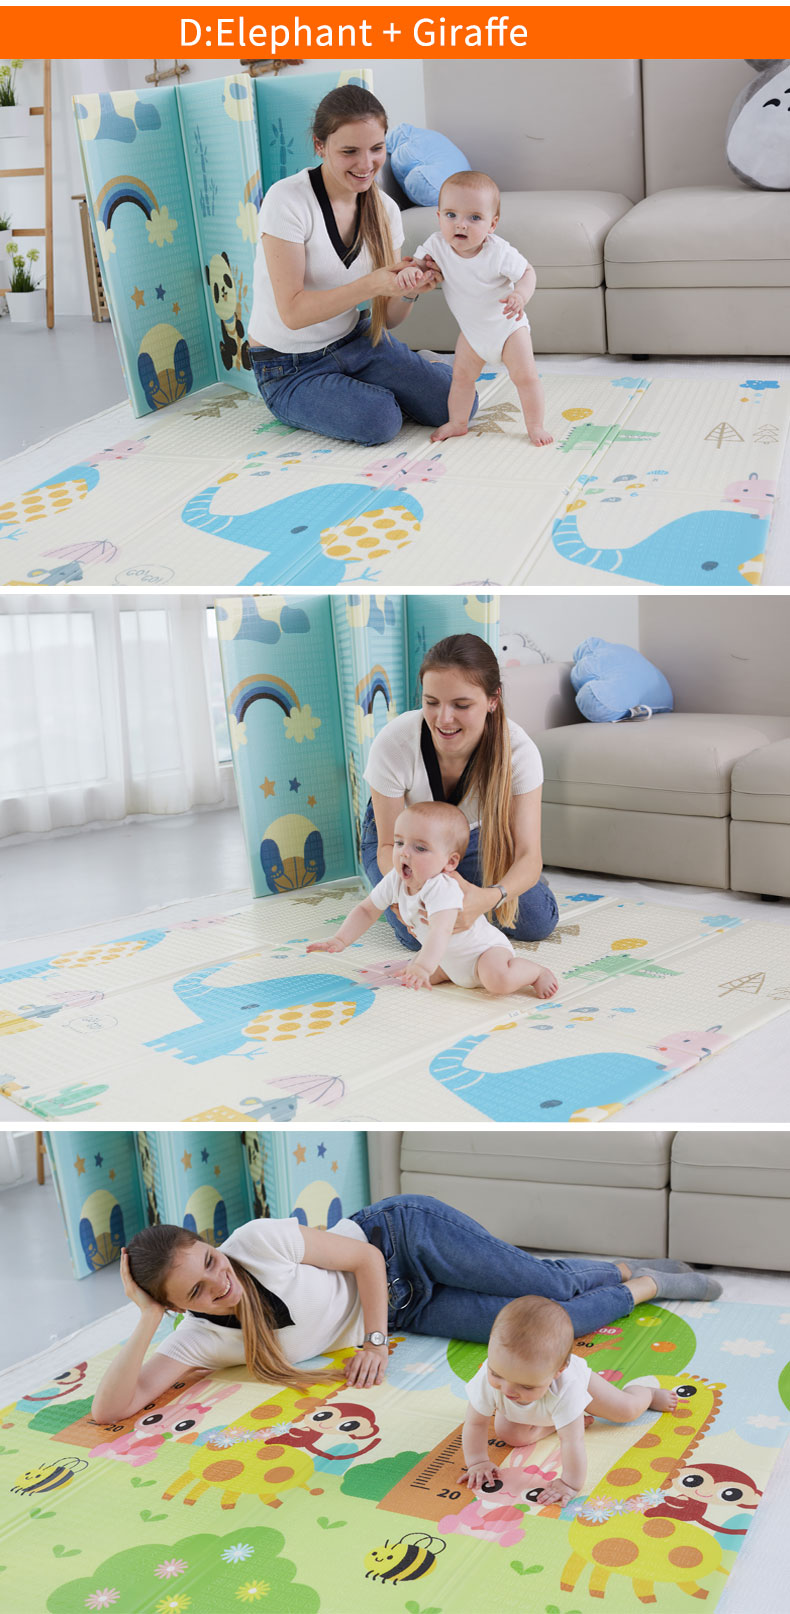 Haed7e8ef3d0b449581230dea856e7d9eS 180X200CM Baby Mat 1CM Thickness Cartoon XPE Kid Play Mat Foldable Anti-skid Carpet Children Game Mat